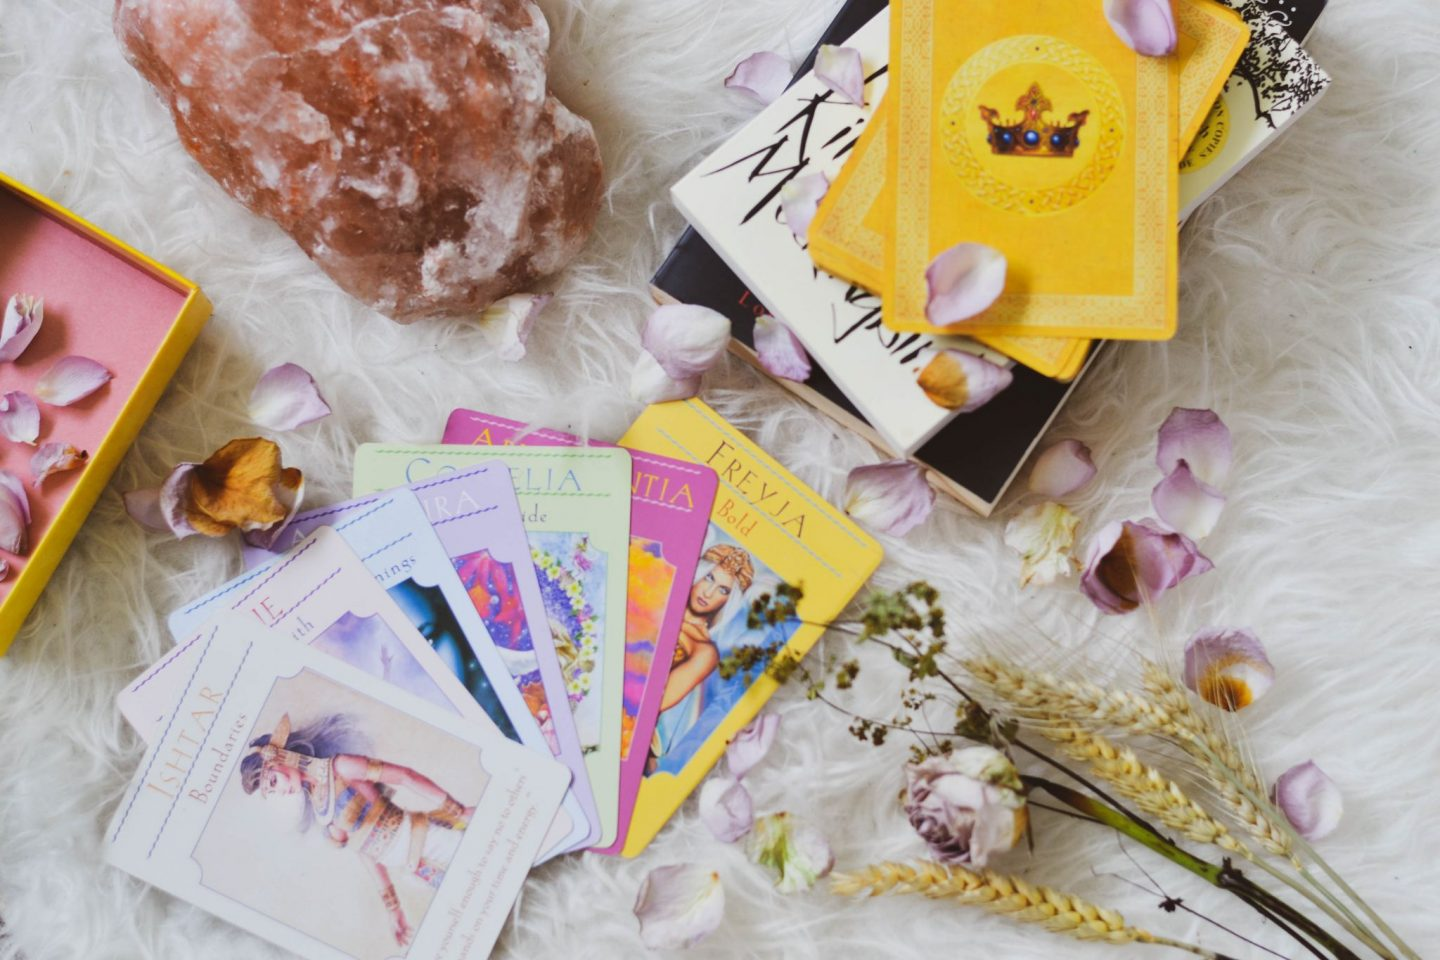 My Psychic Reading Experience